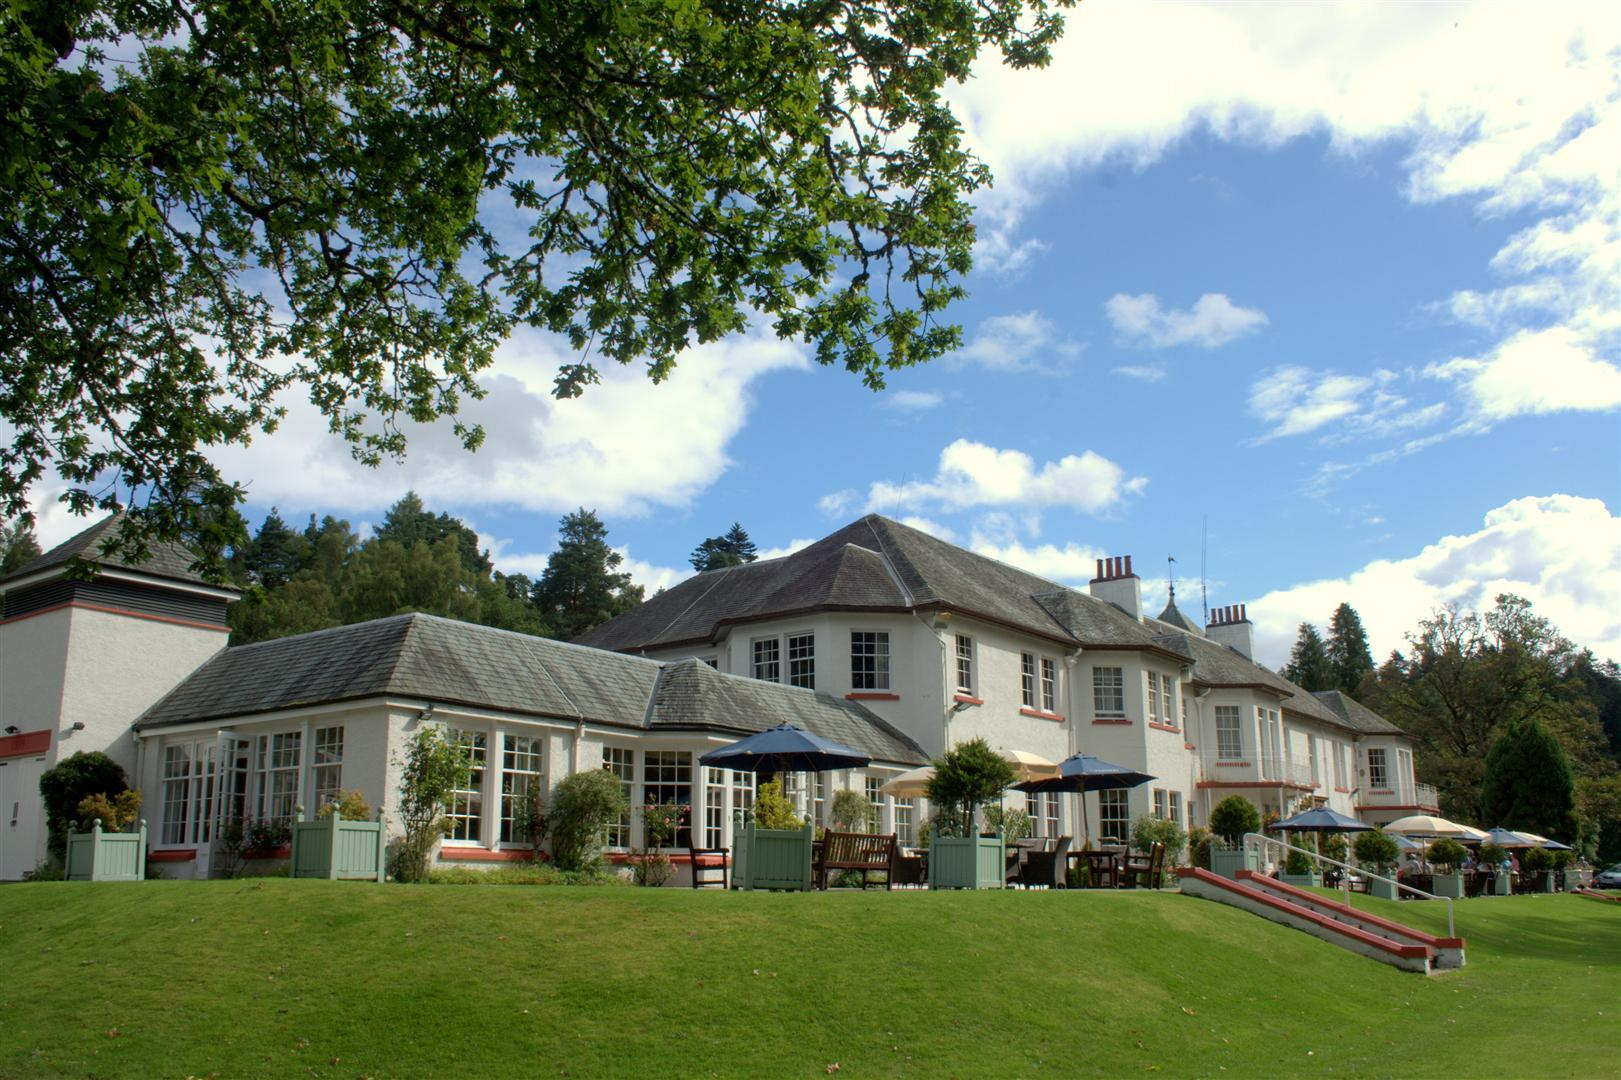 The Hilton Dunkeld House Hotel.